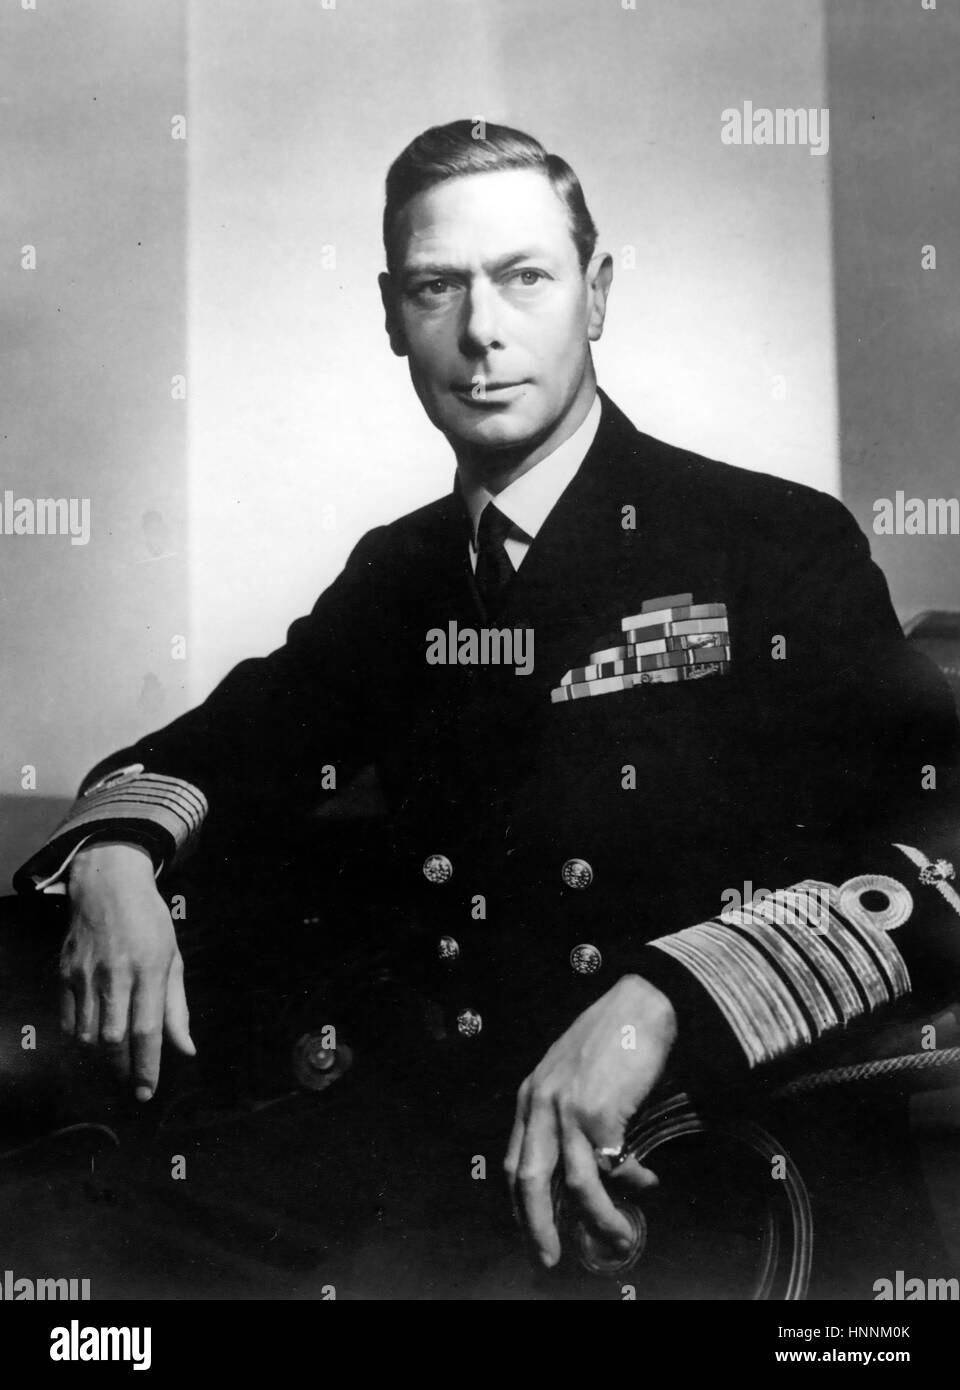 KING GEORGE VI (1895-1952) in the uniform of Admiral of the Fleet about 1945 - Stock Image